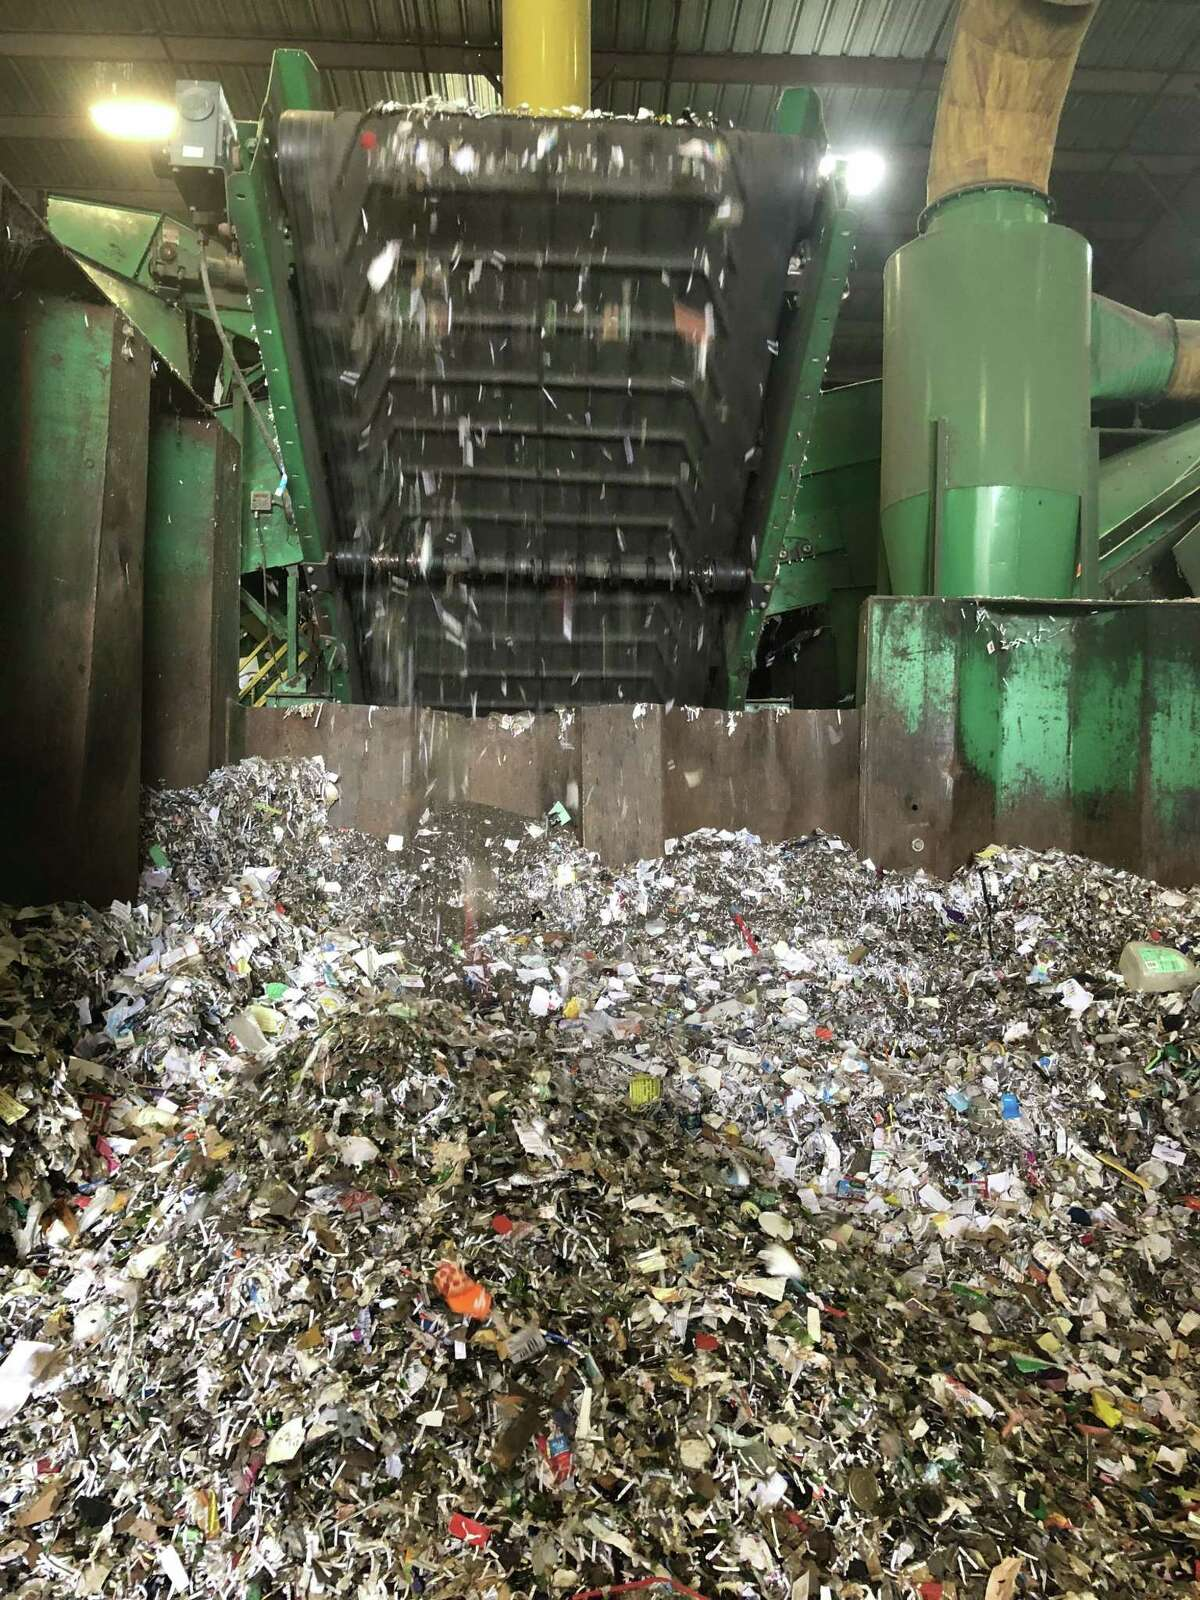 Recycled glass is processed at a local recycling facility. Small items gets mixed with the glass, contaminating it and reducing its market value.